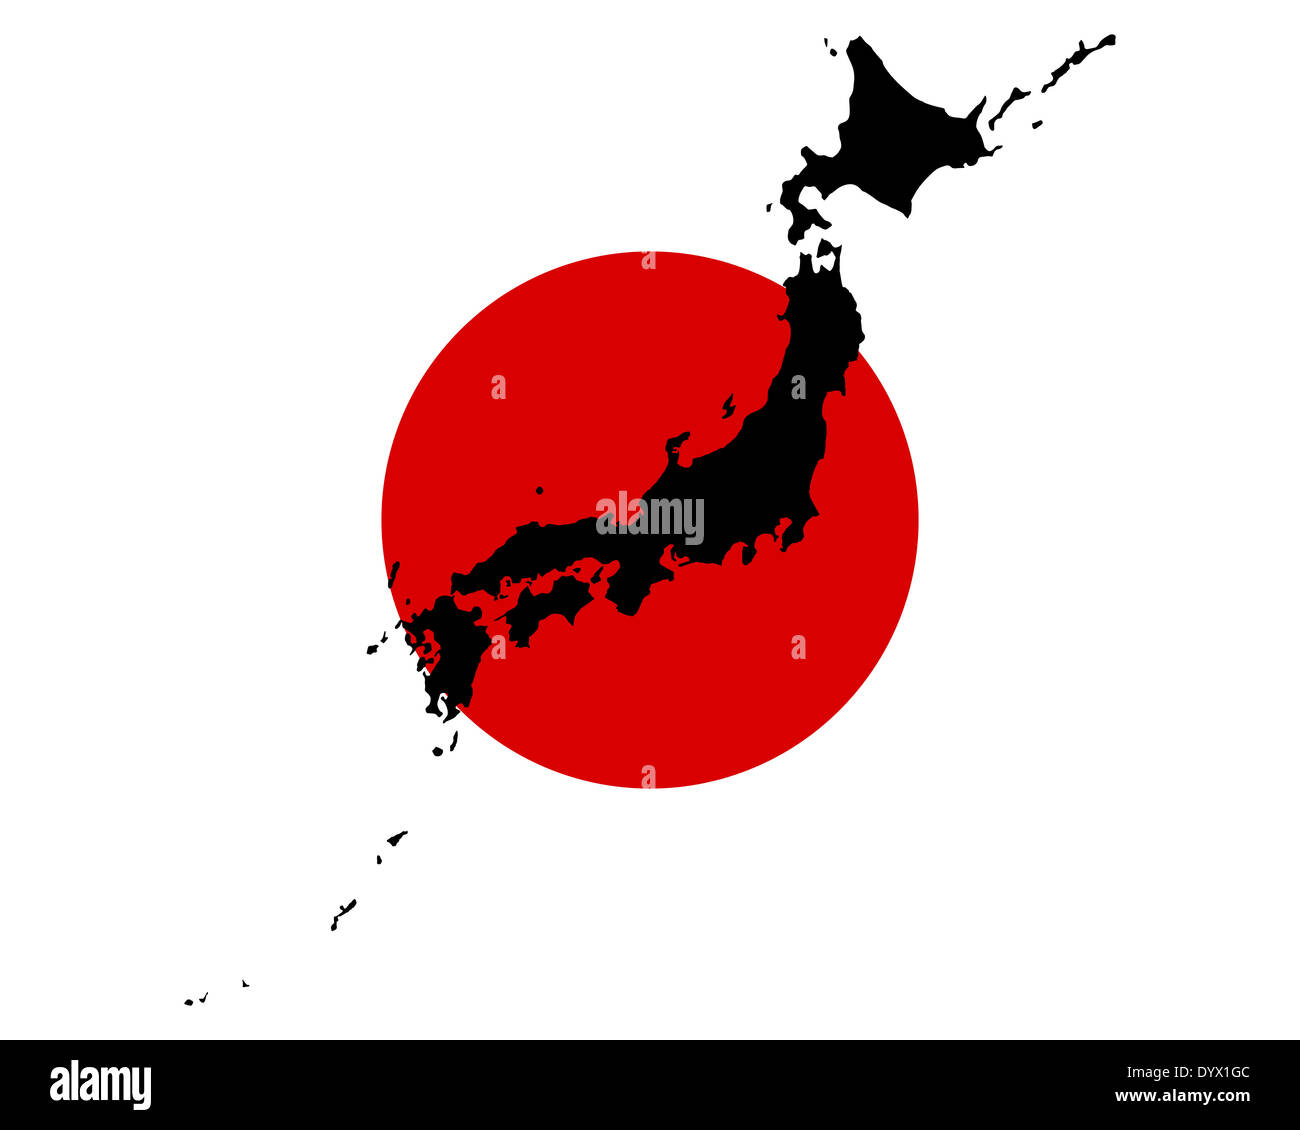 Map and flag of Japan Stock Photo